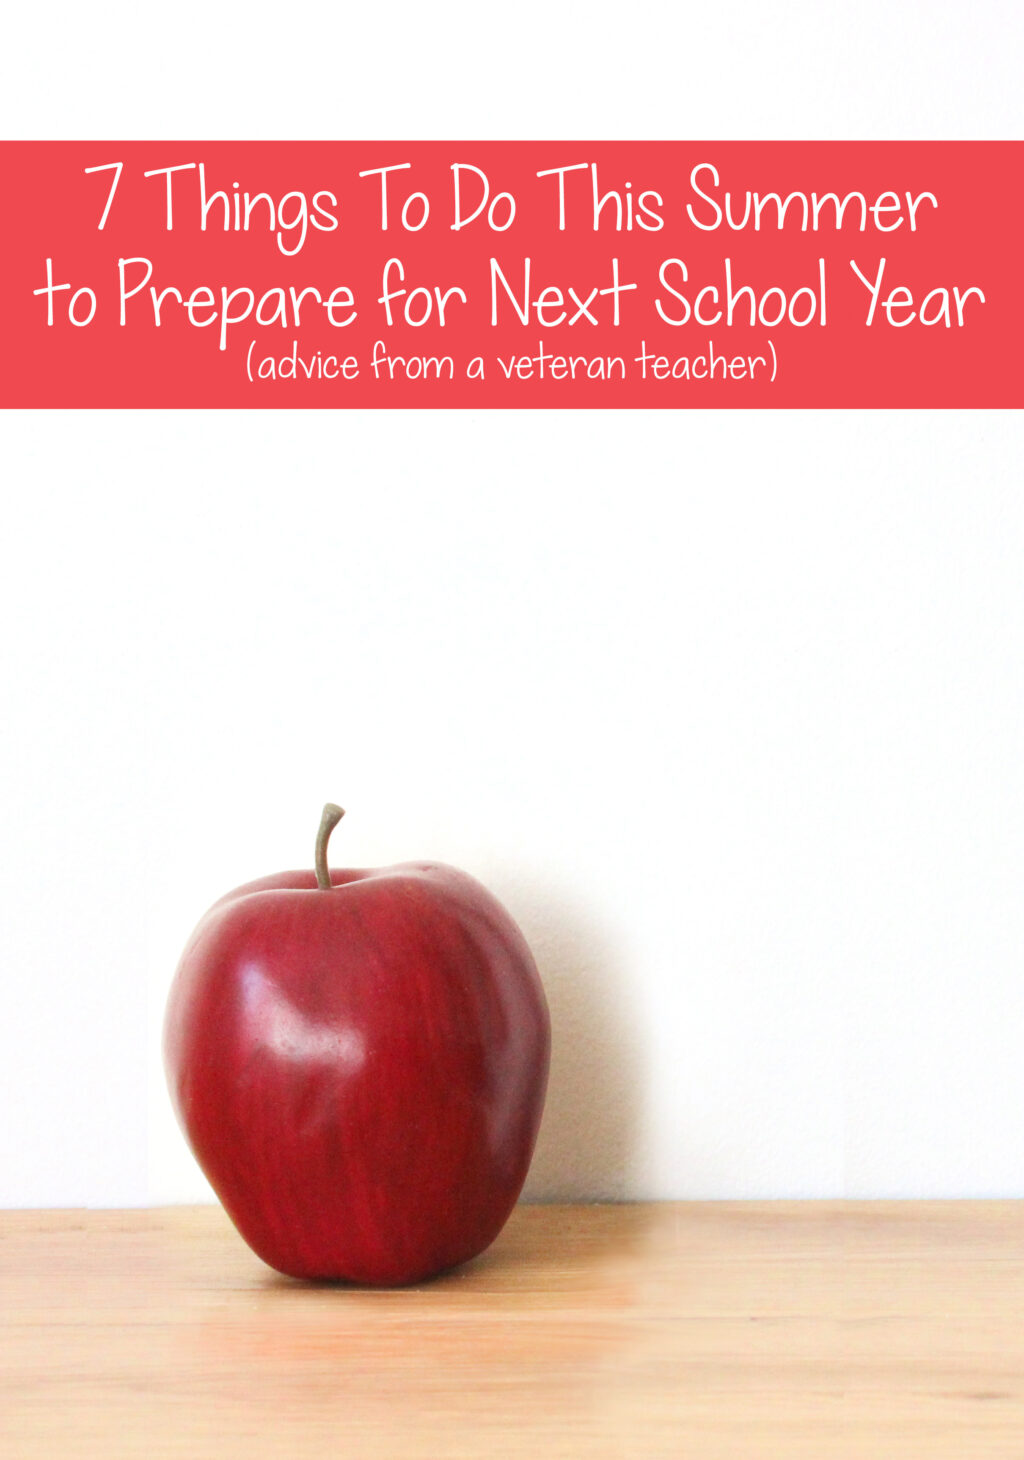 From a teacher's perspective: How to Prepare for School. 7 things to do over the summer to prepare your child for the next school year.